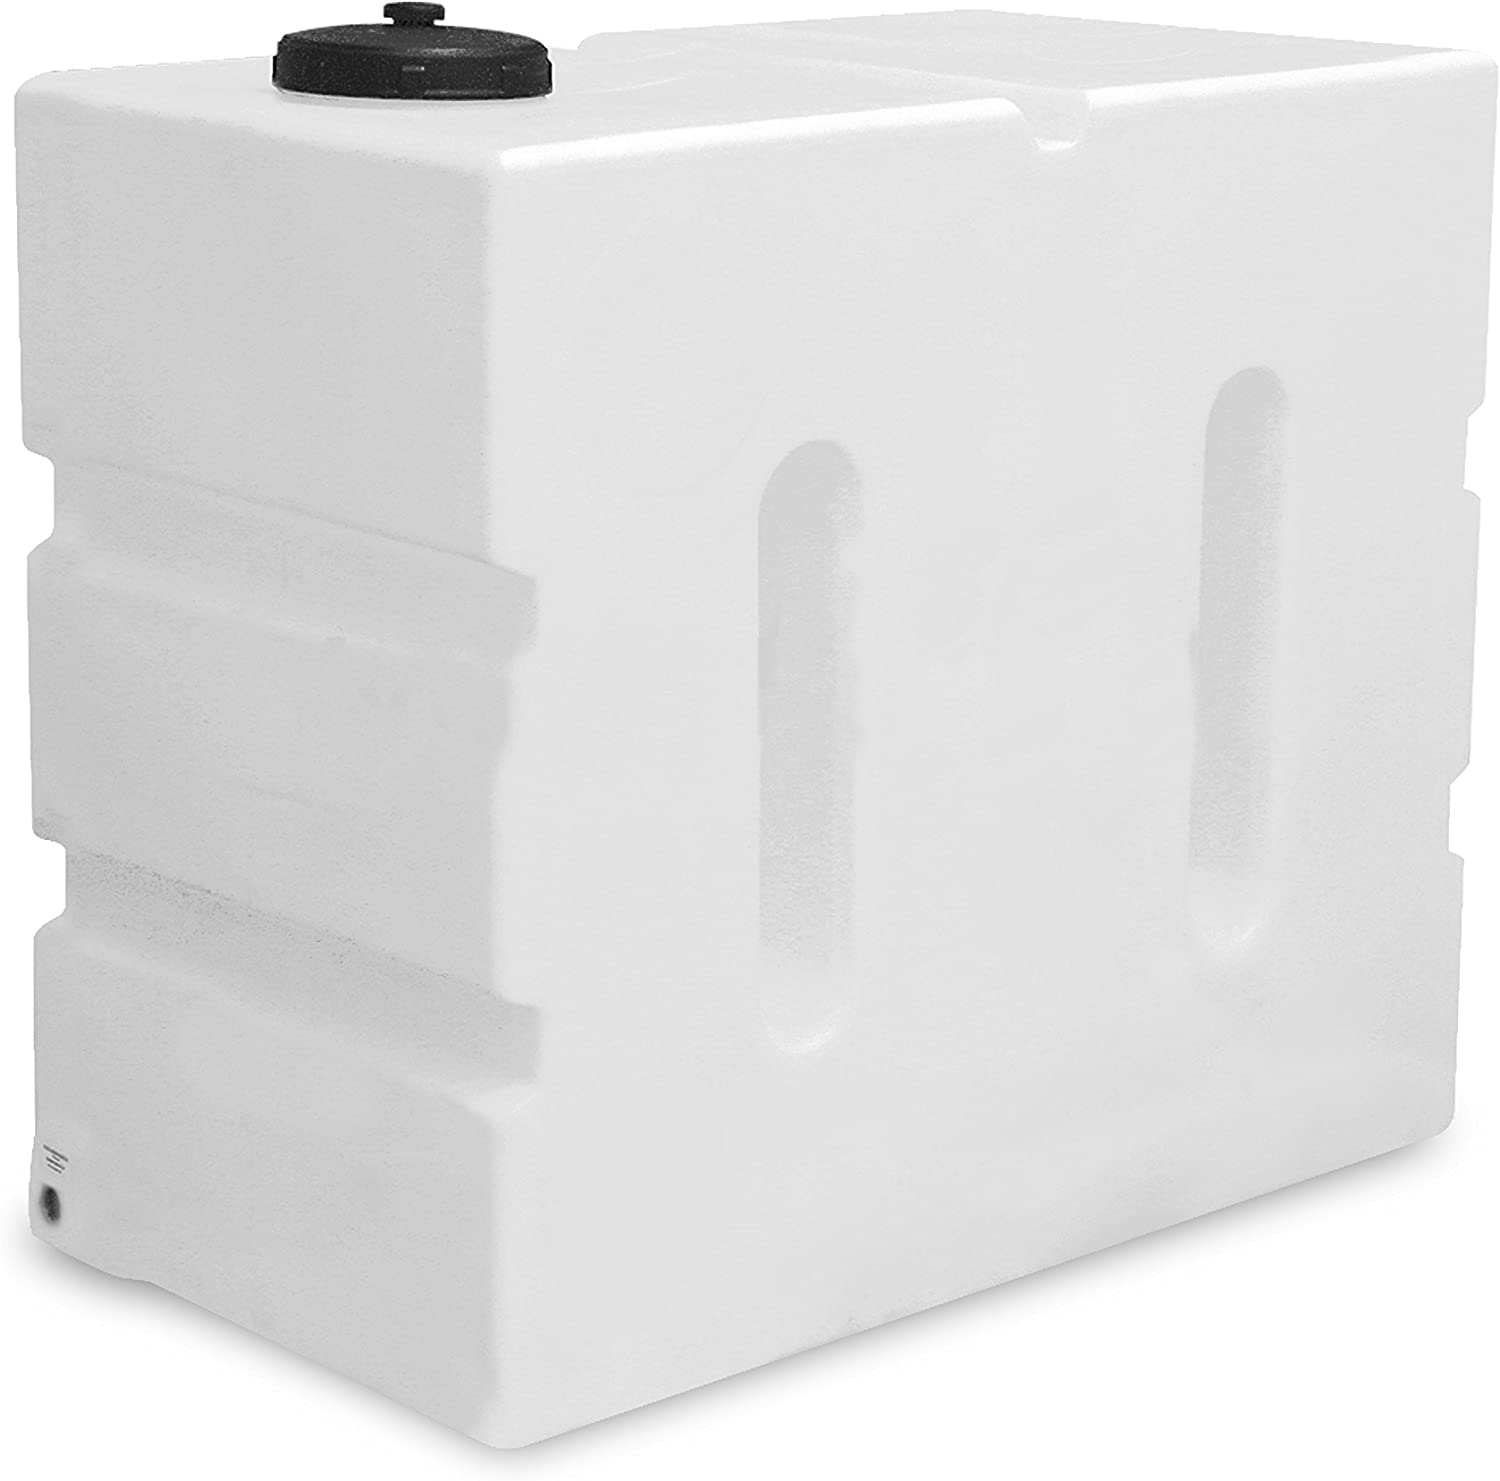 IWE 210L Litre Plastic Tower Water Valeting Window Cleaning Camping Storage Tank